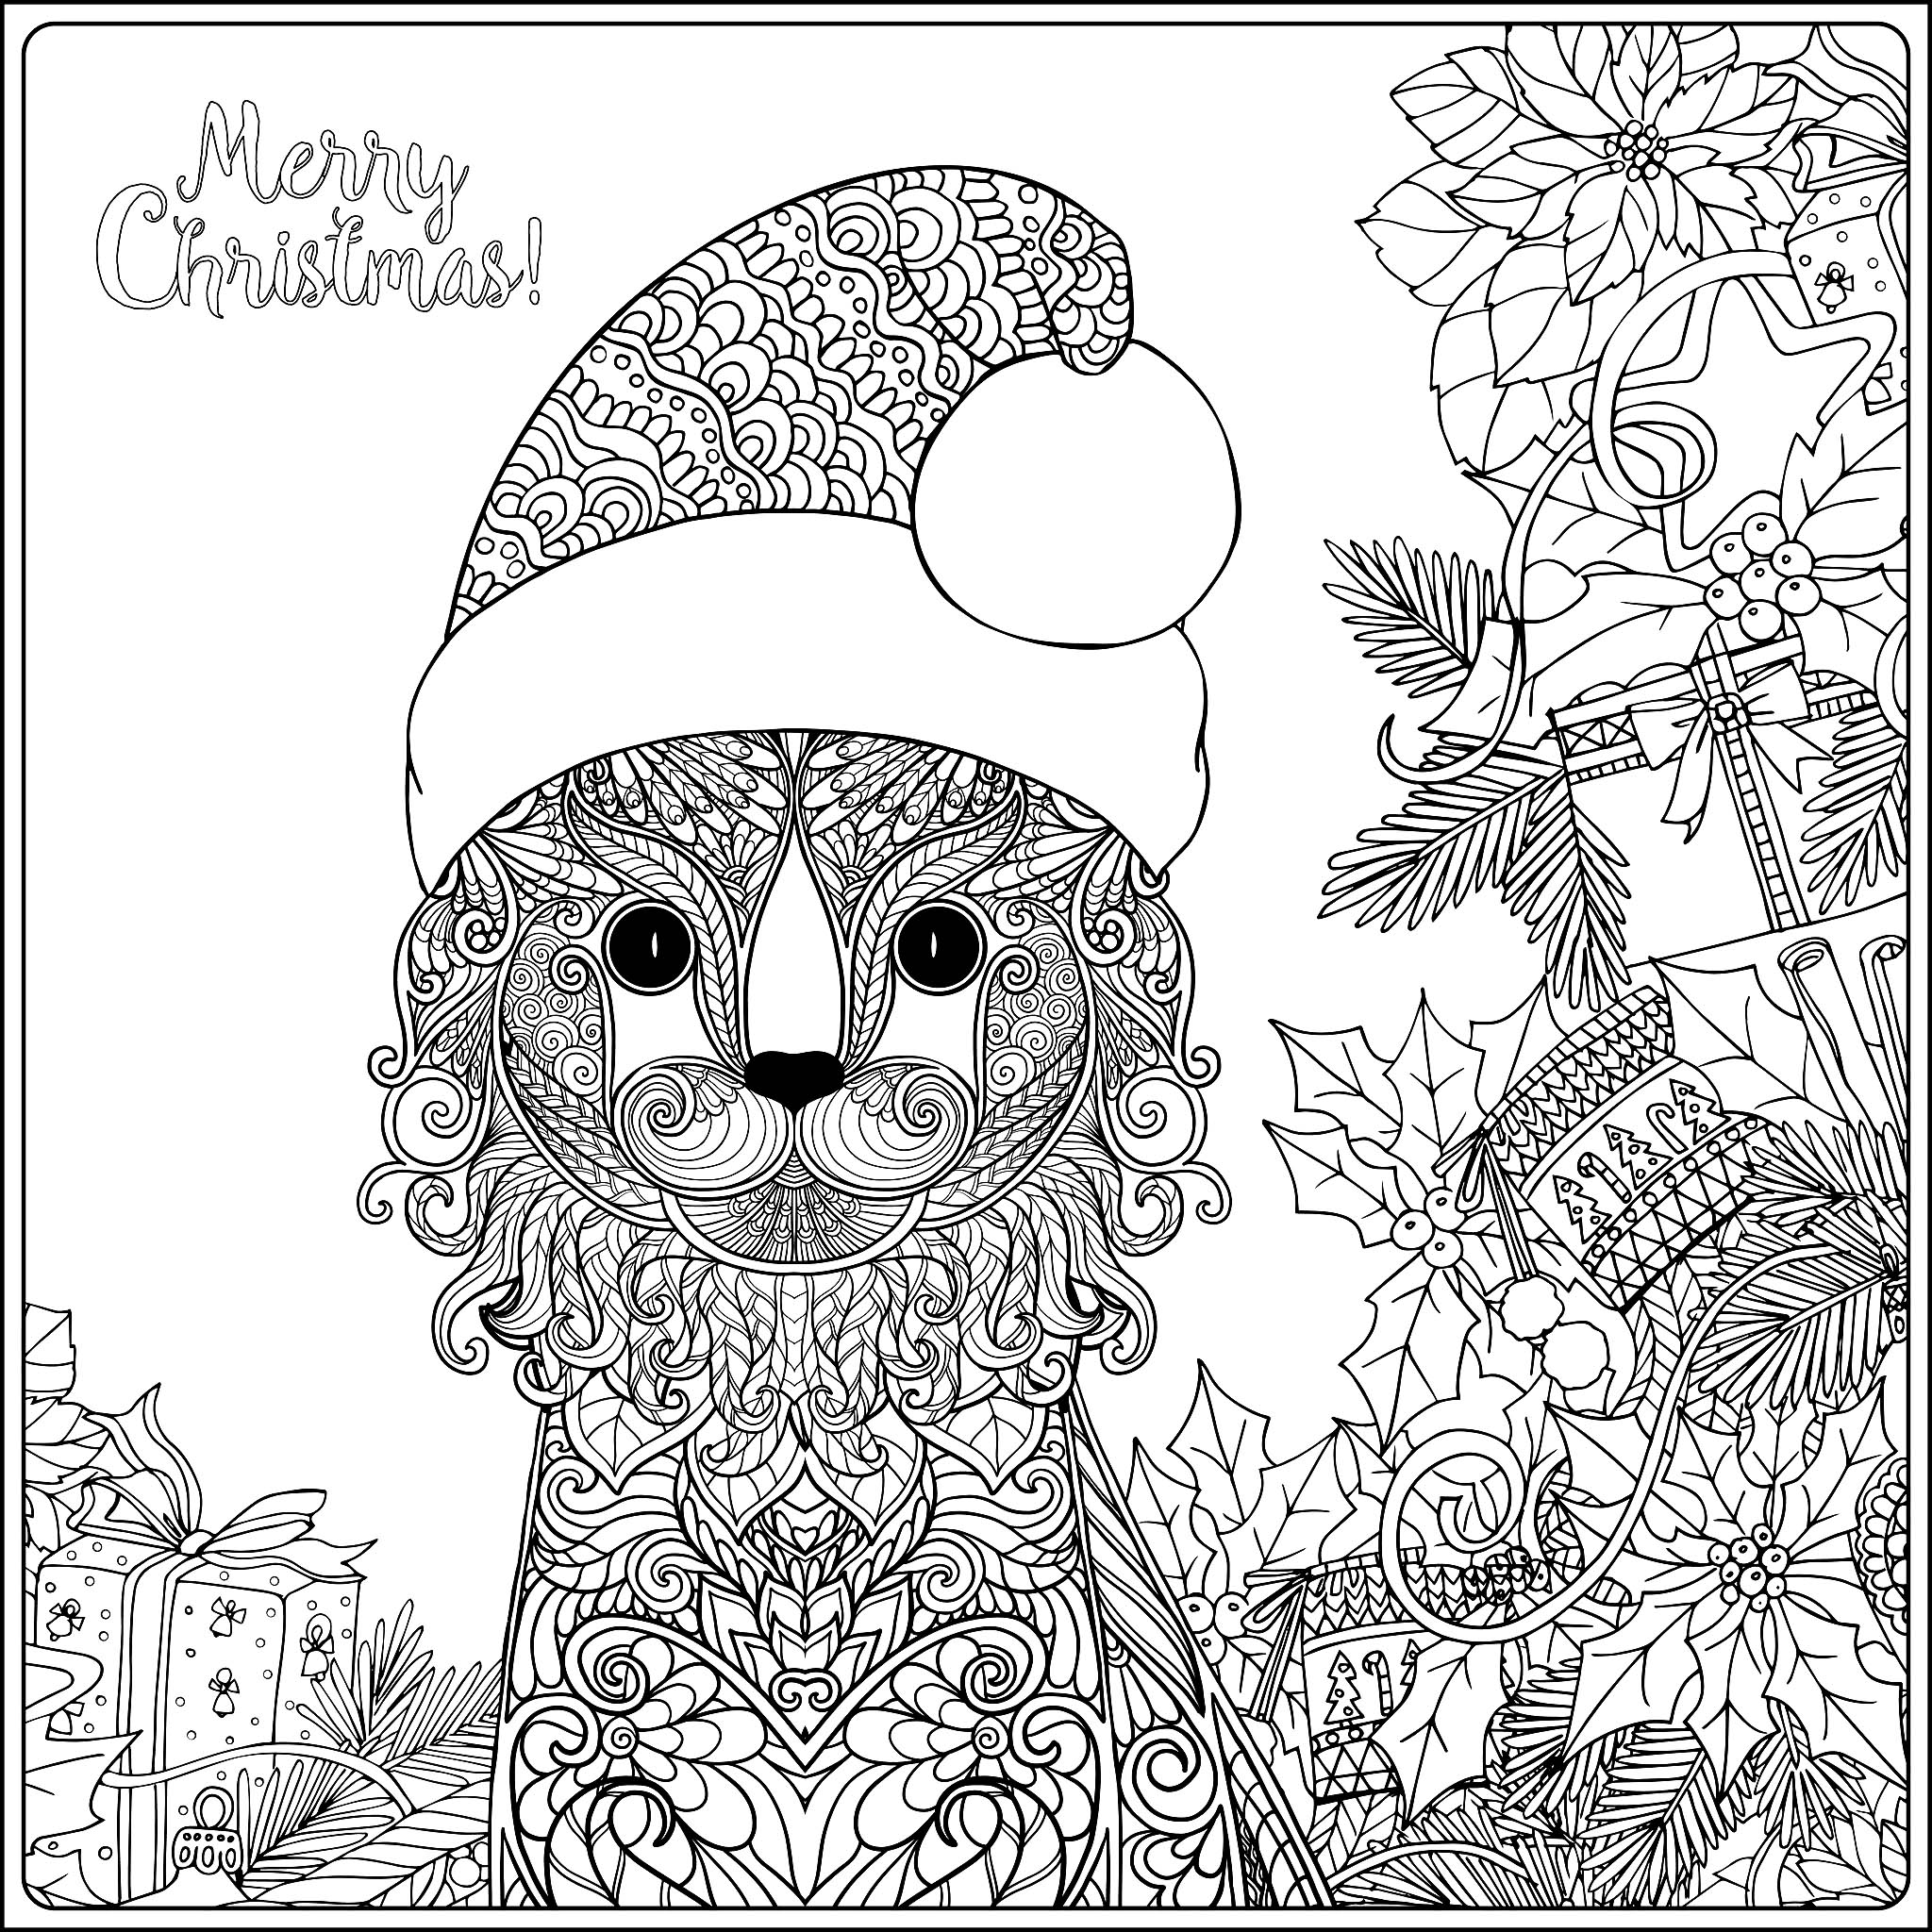 Christmas cat with gifts - Christmas Adult Coloring Pages | christmas colouring pages for adults